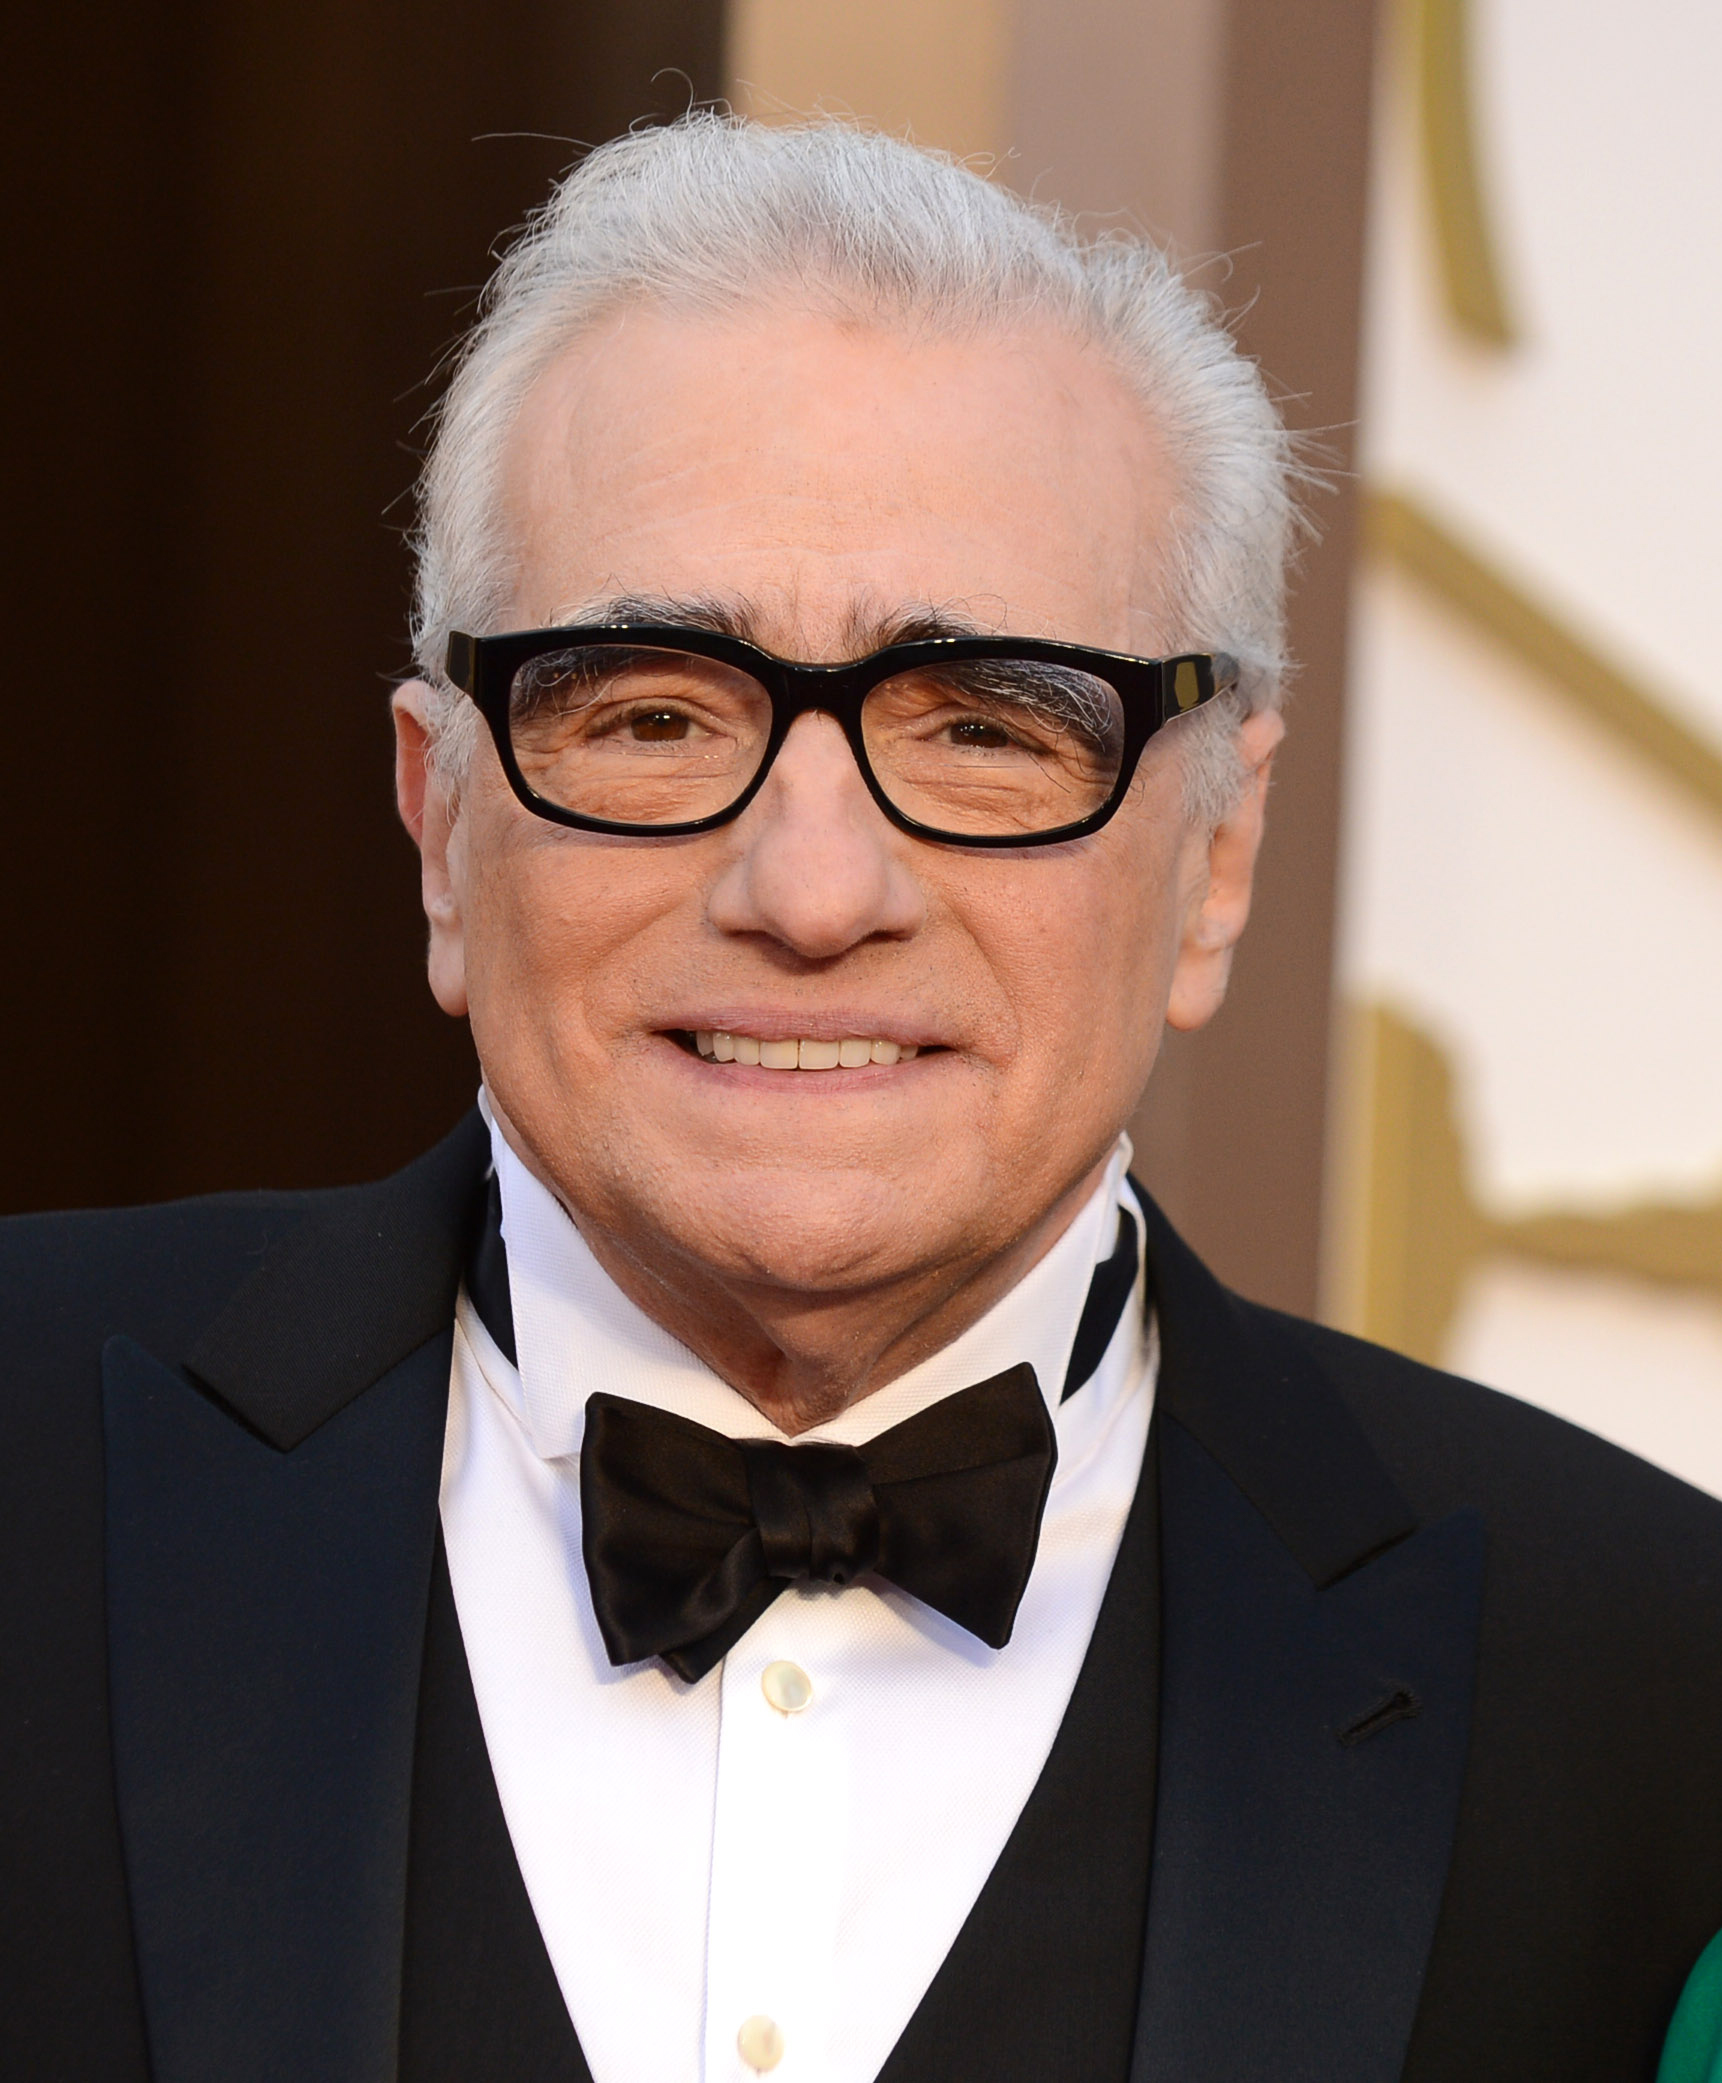 Martin Scorsese arrives at the Oscars on March 2, 2014, at the Dolby Theatre in Los Angeles.